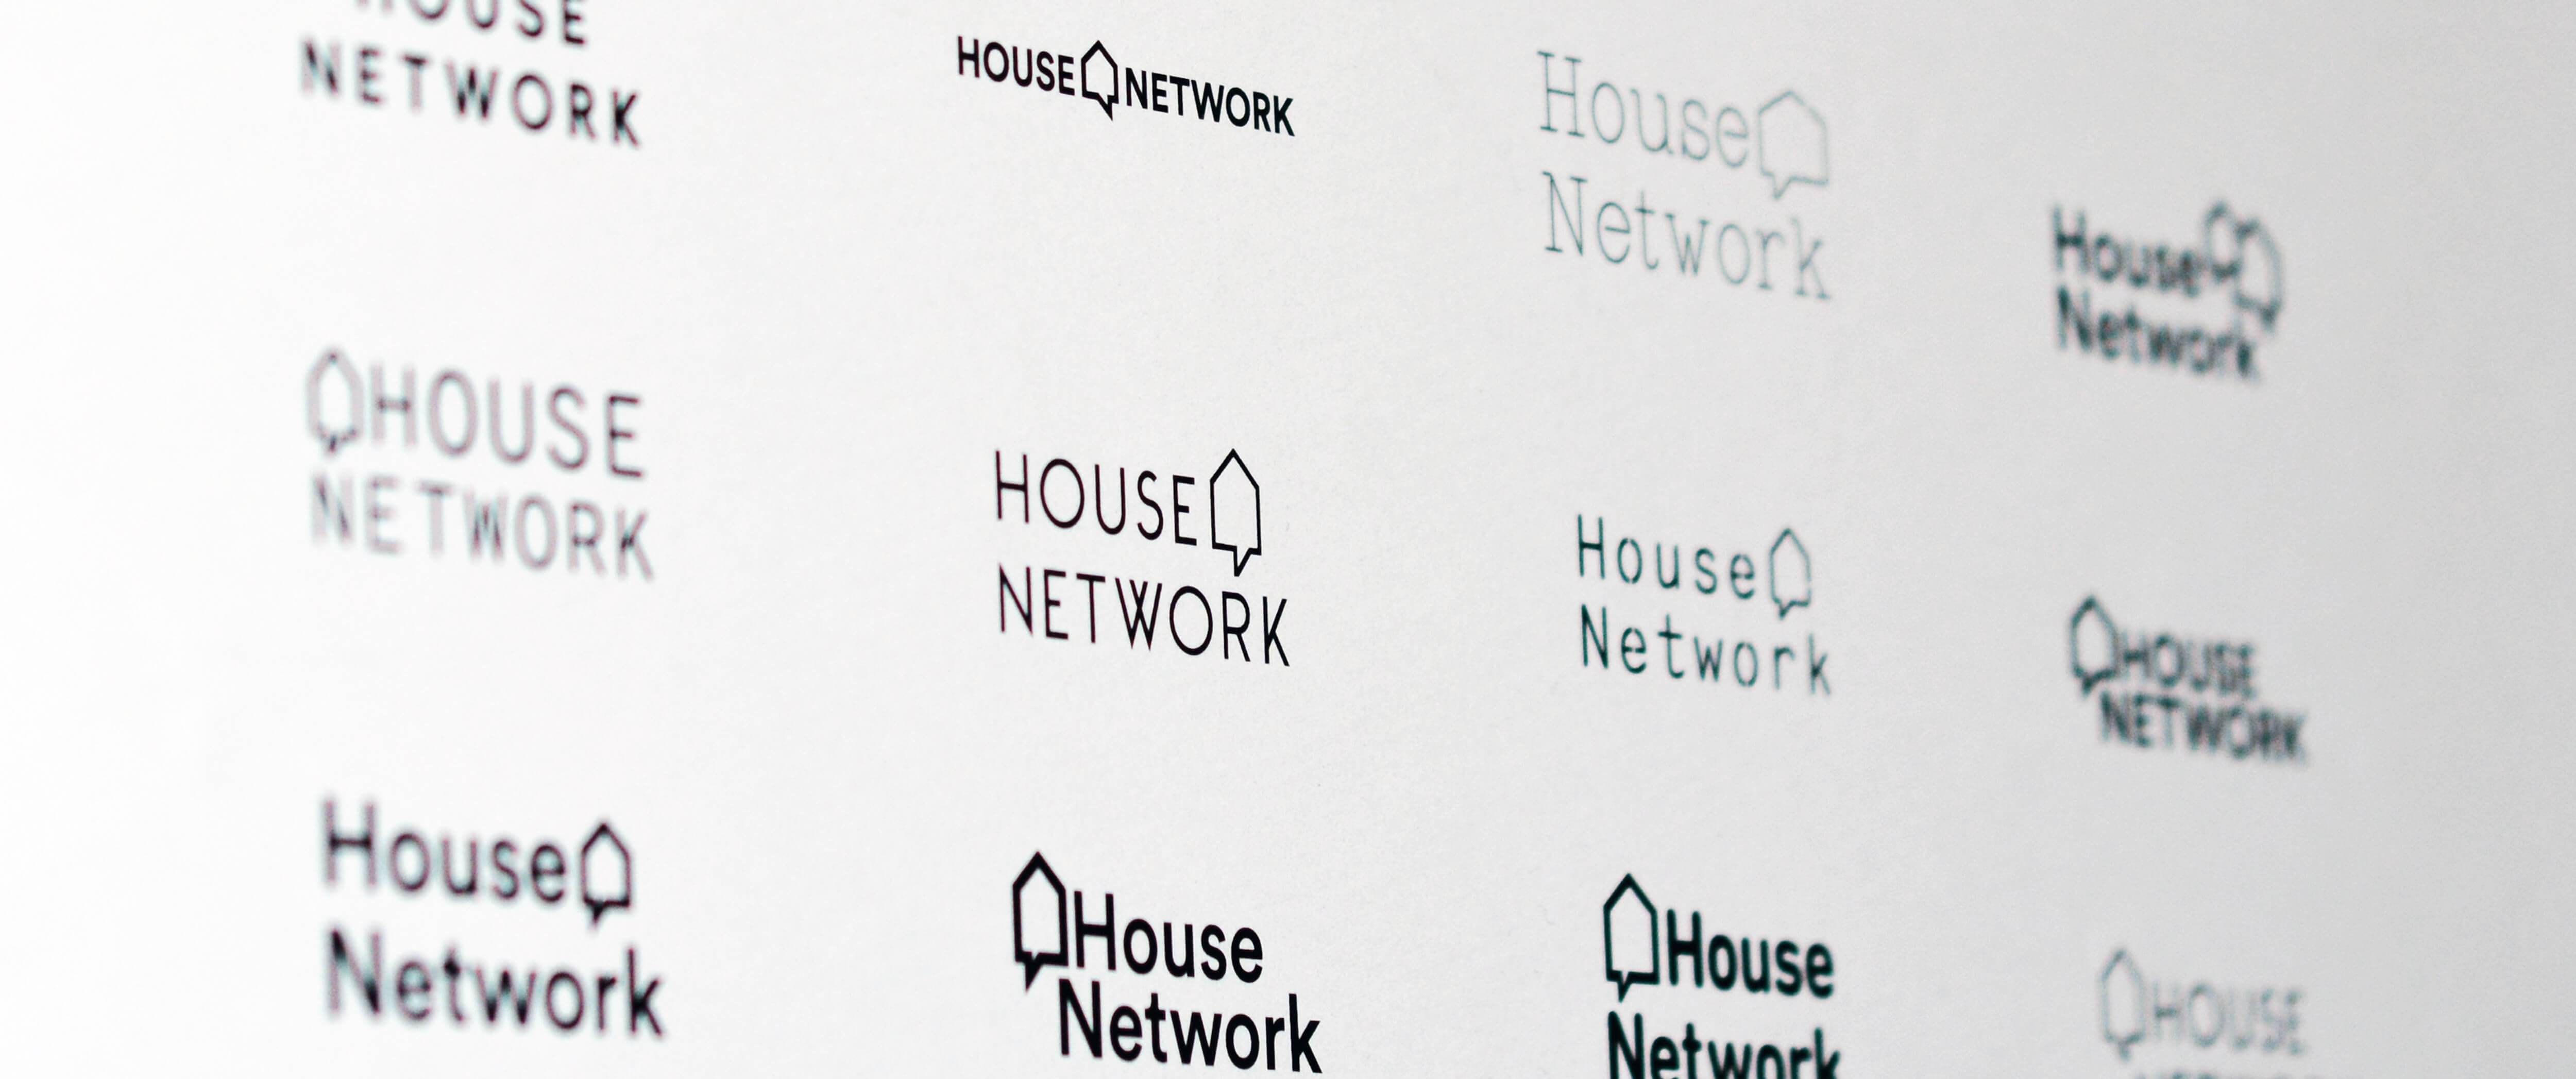 house_network_parallax_logo_process